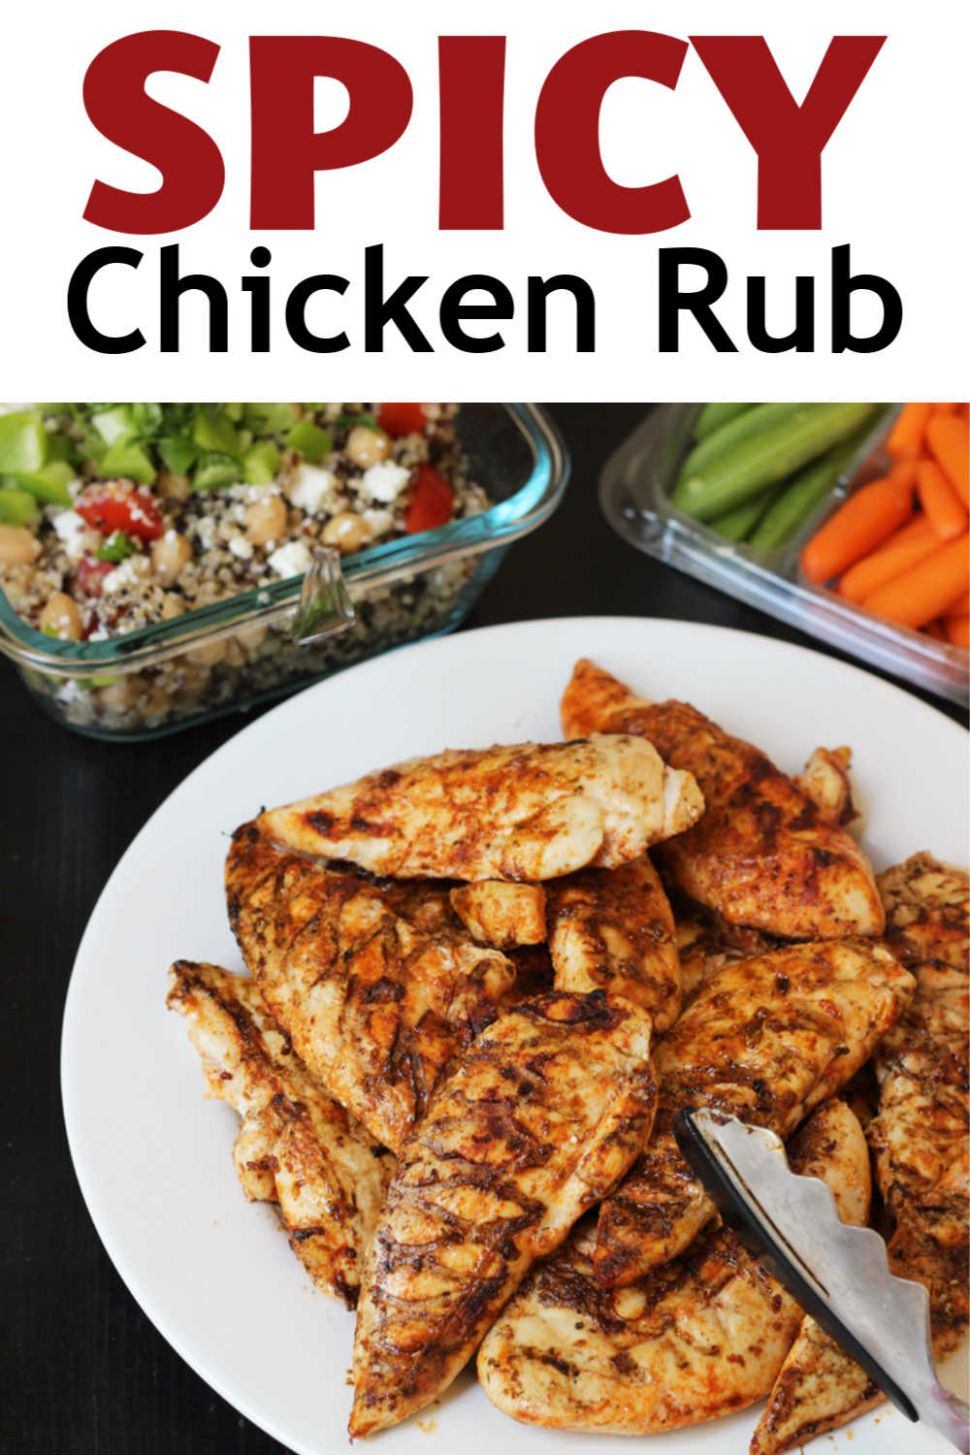 Spicy Chicken Rub for Grilled Chicken - Good Cheap Eats - Recipe For Chicken Breast Rub